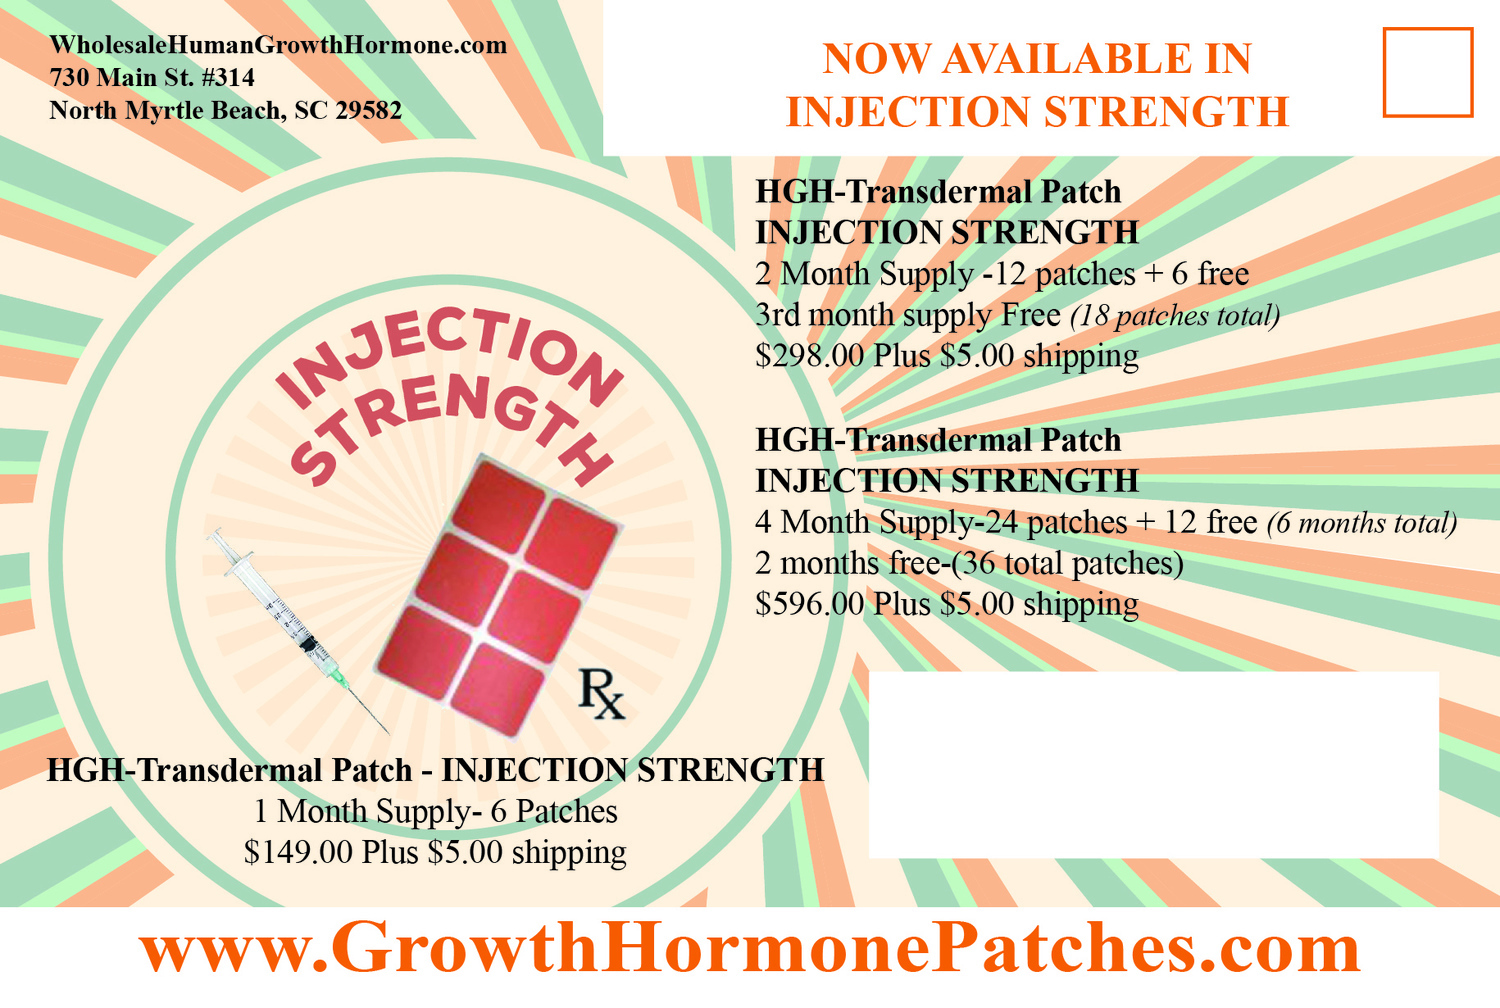 High-Transdermal Injection strength patches (1 month Supply - 6 Patches)